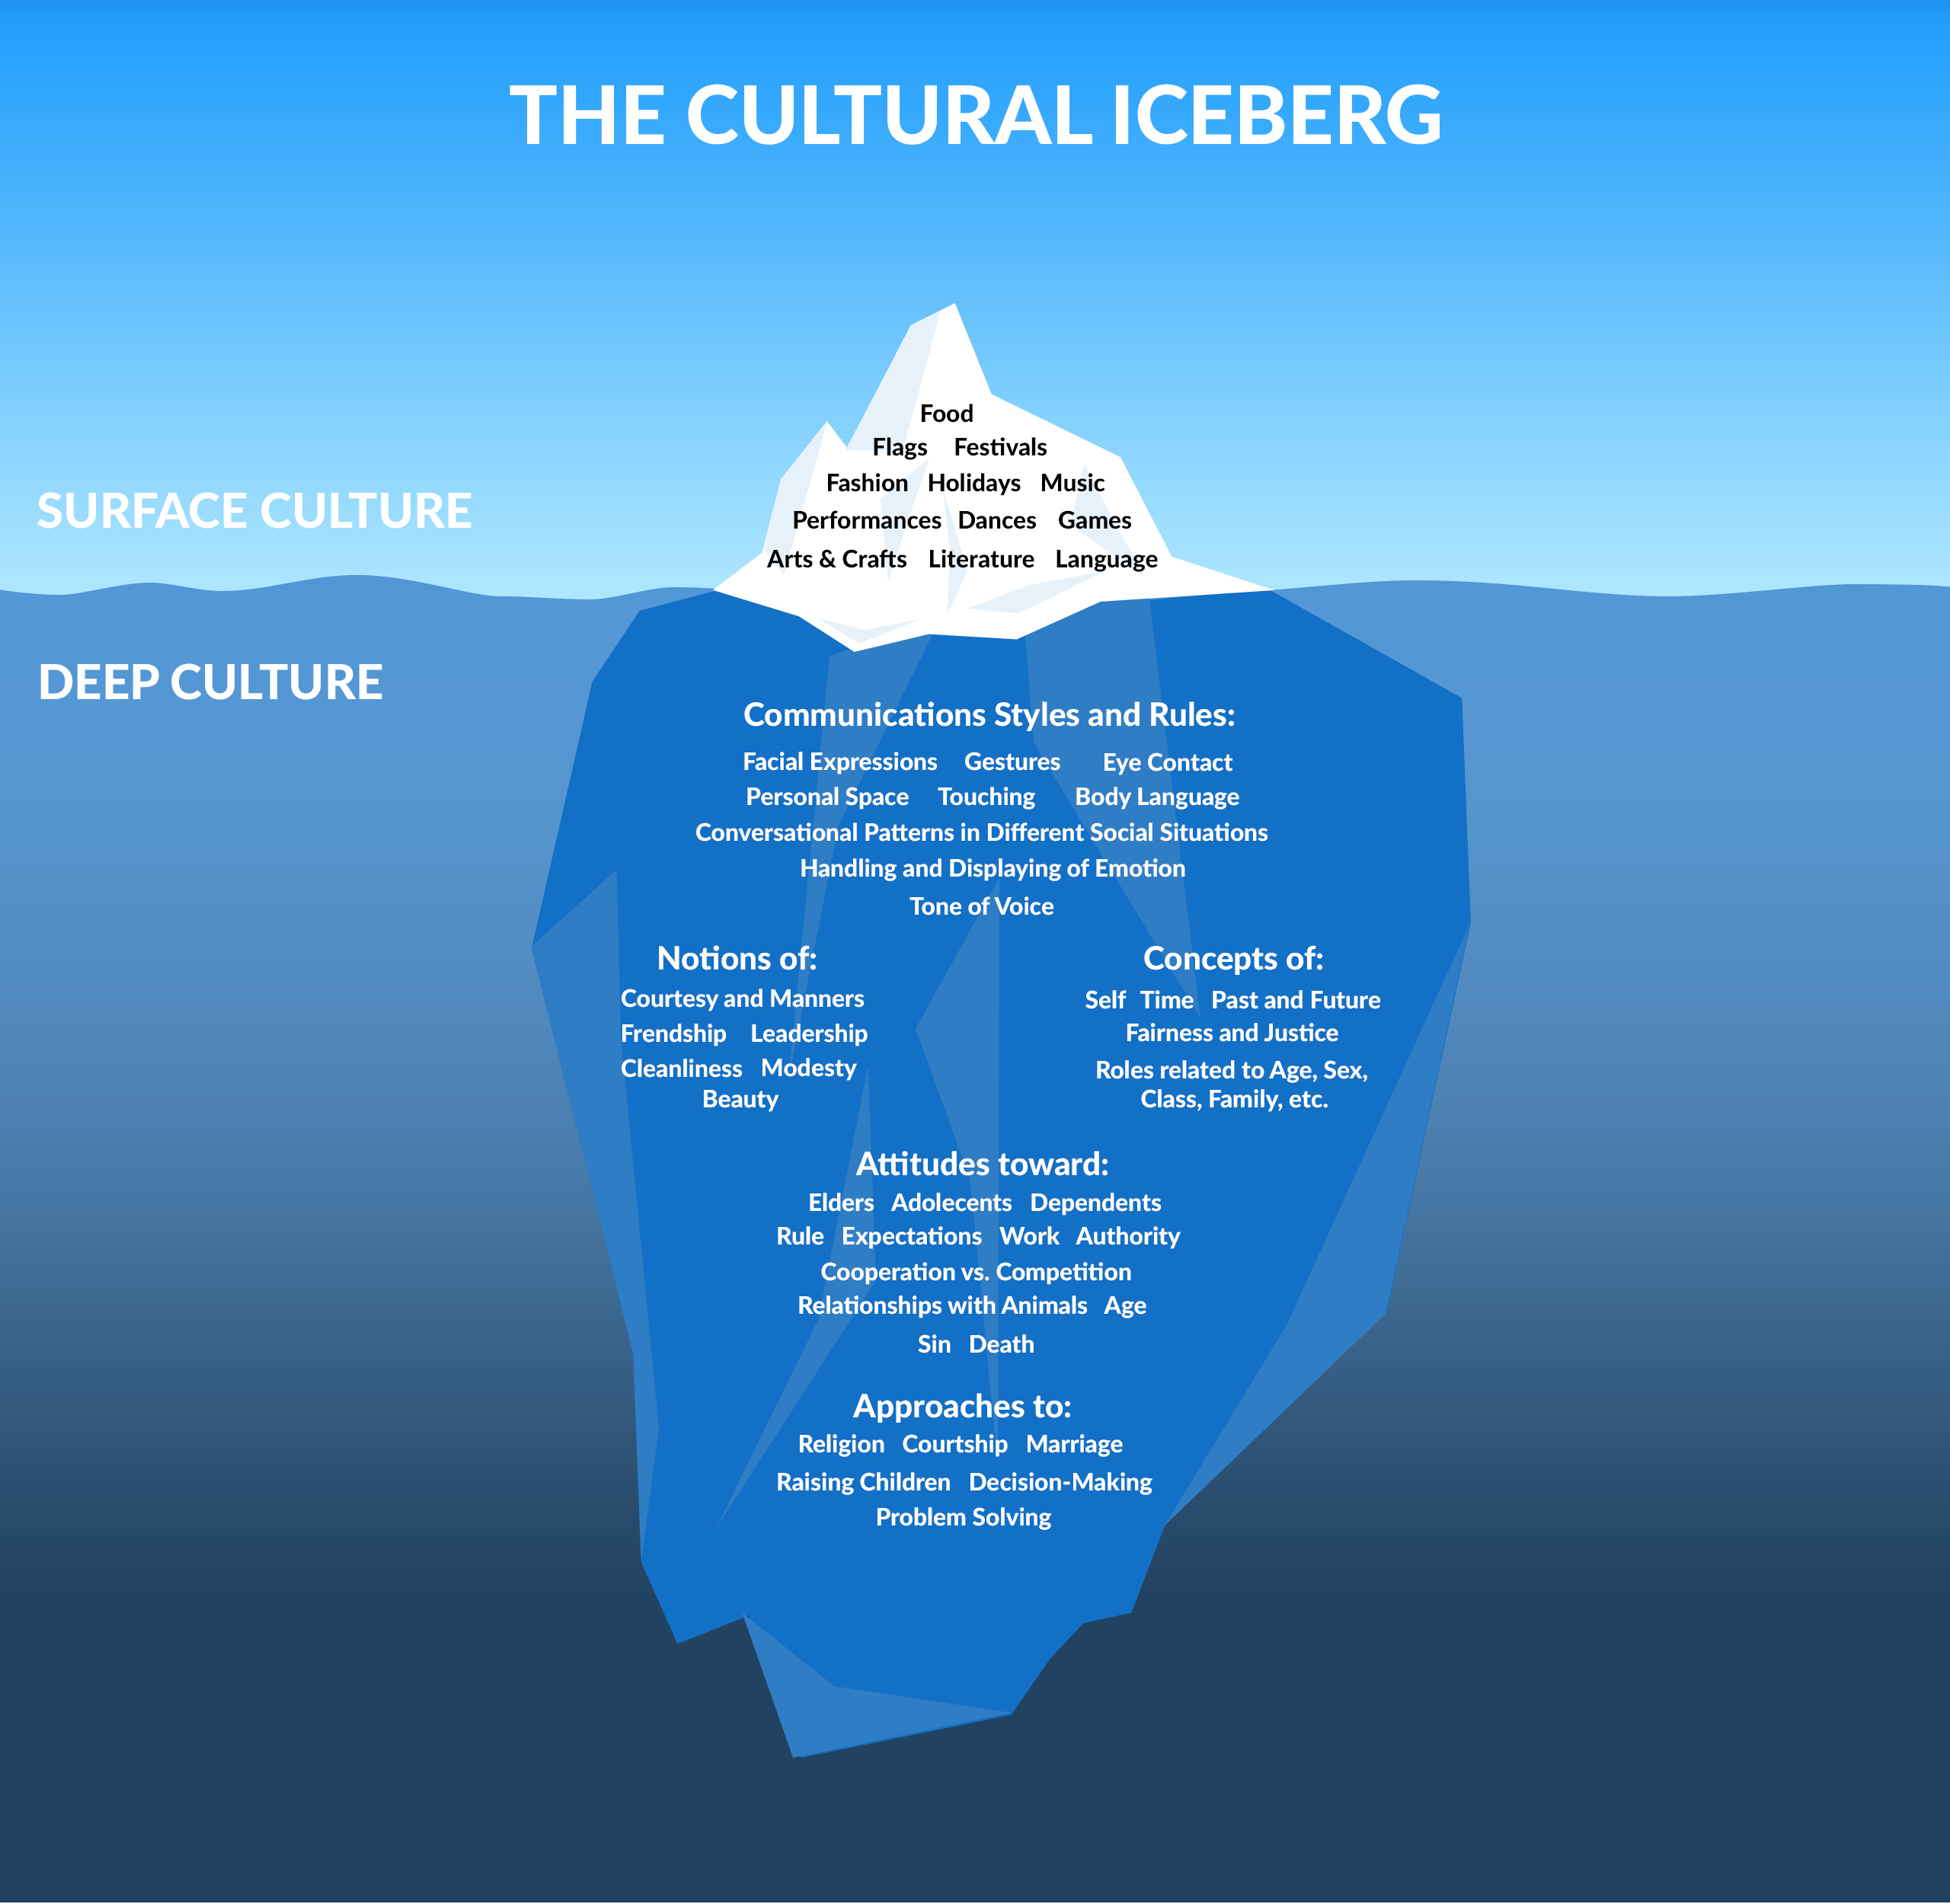 understanding the culture of a company part 1 surface culture